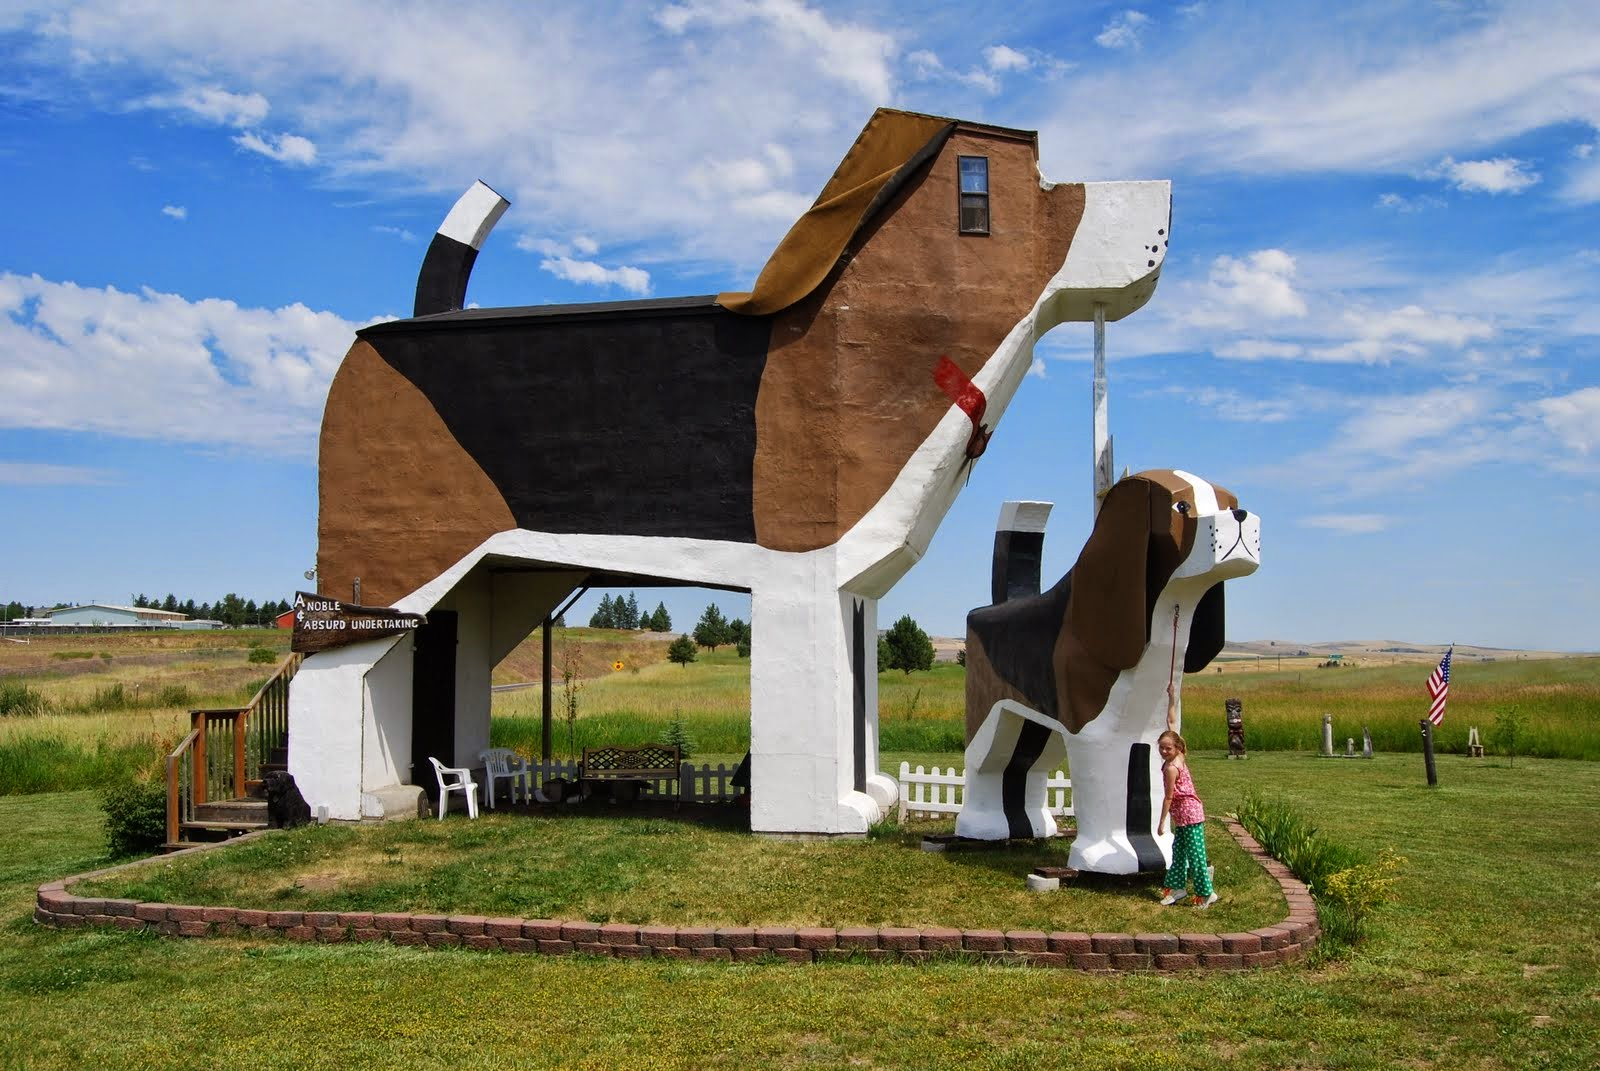 Craziest Architecture Of All Time That Can Make You To Look It Twice 10